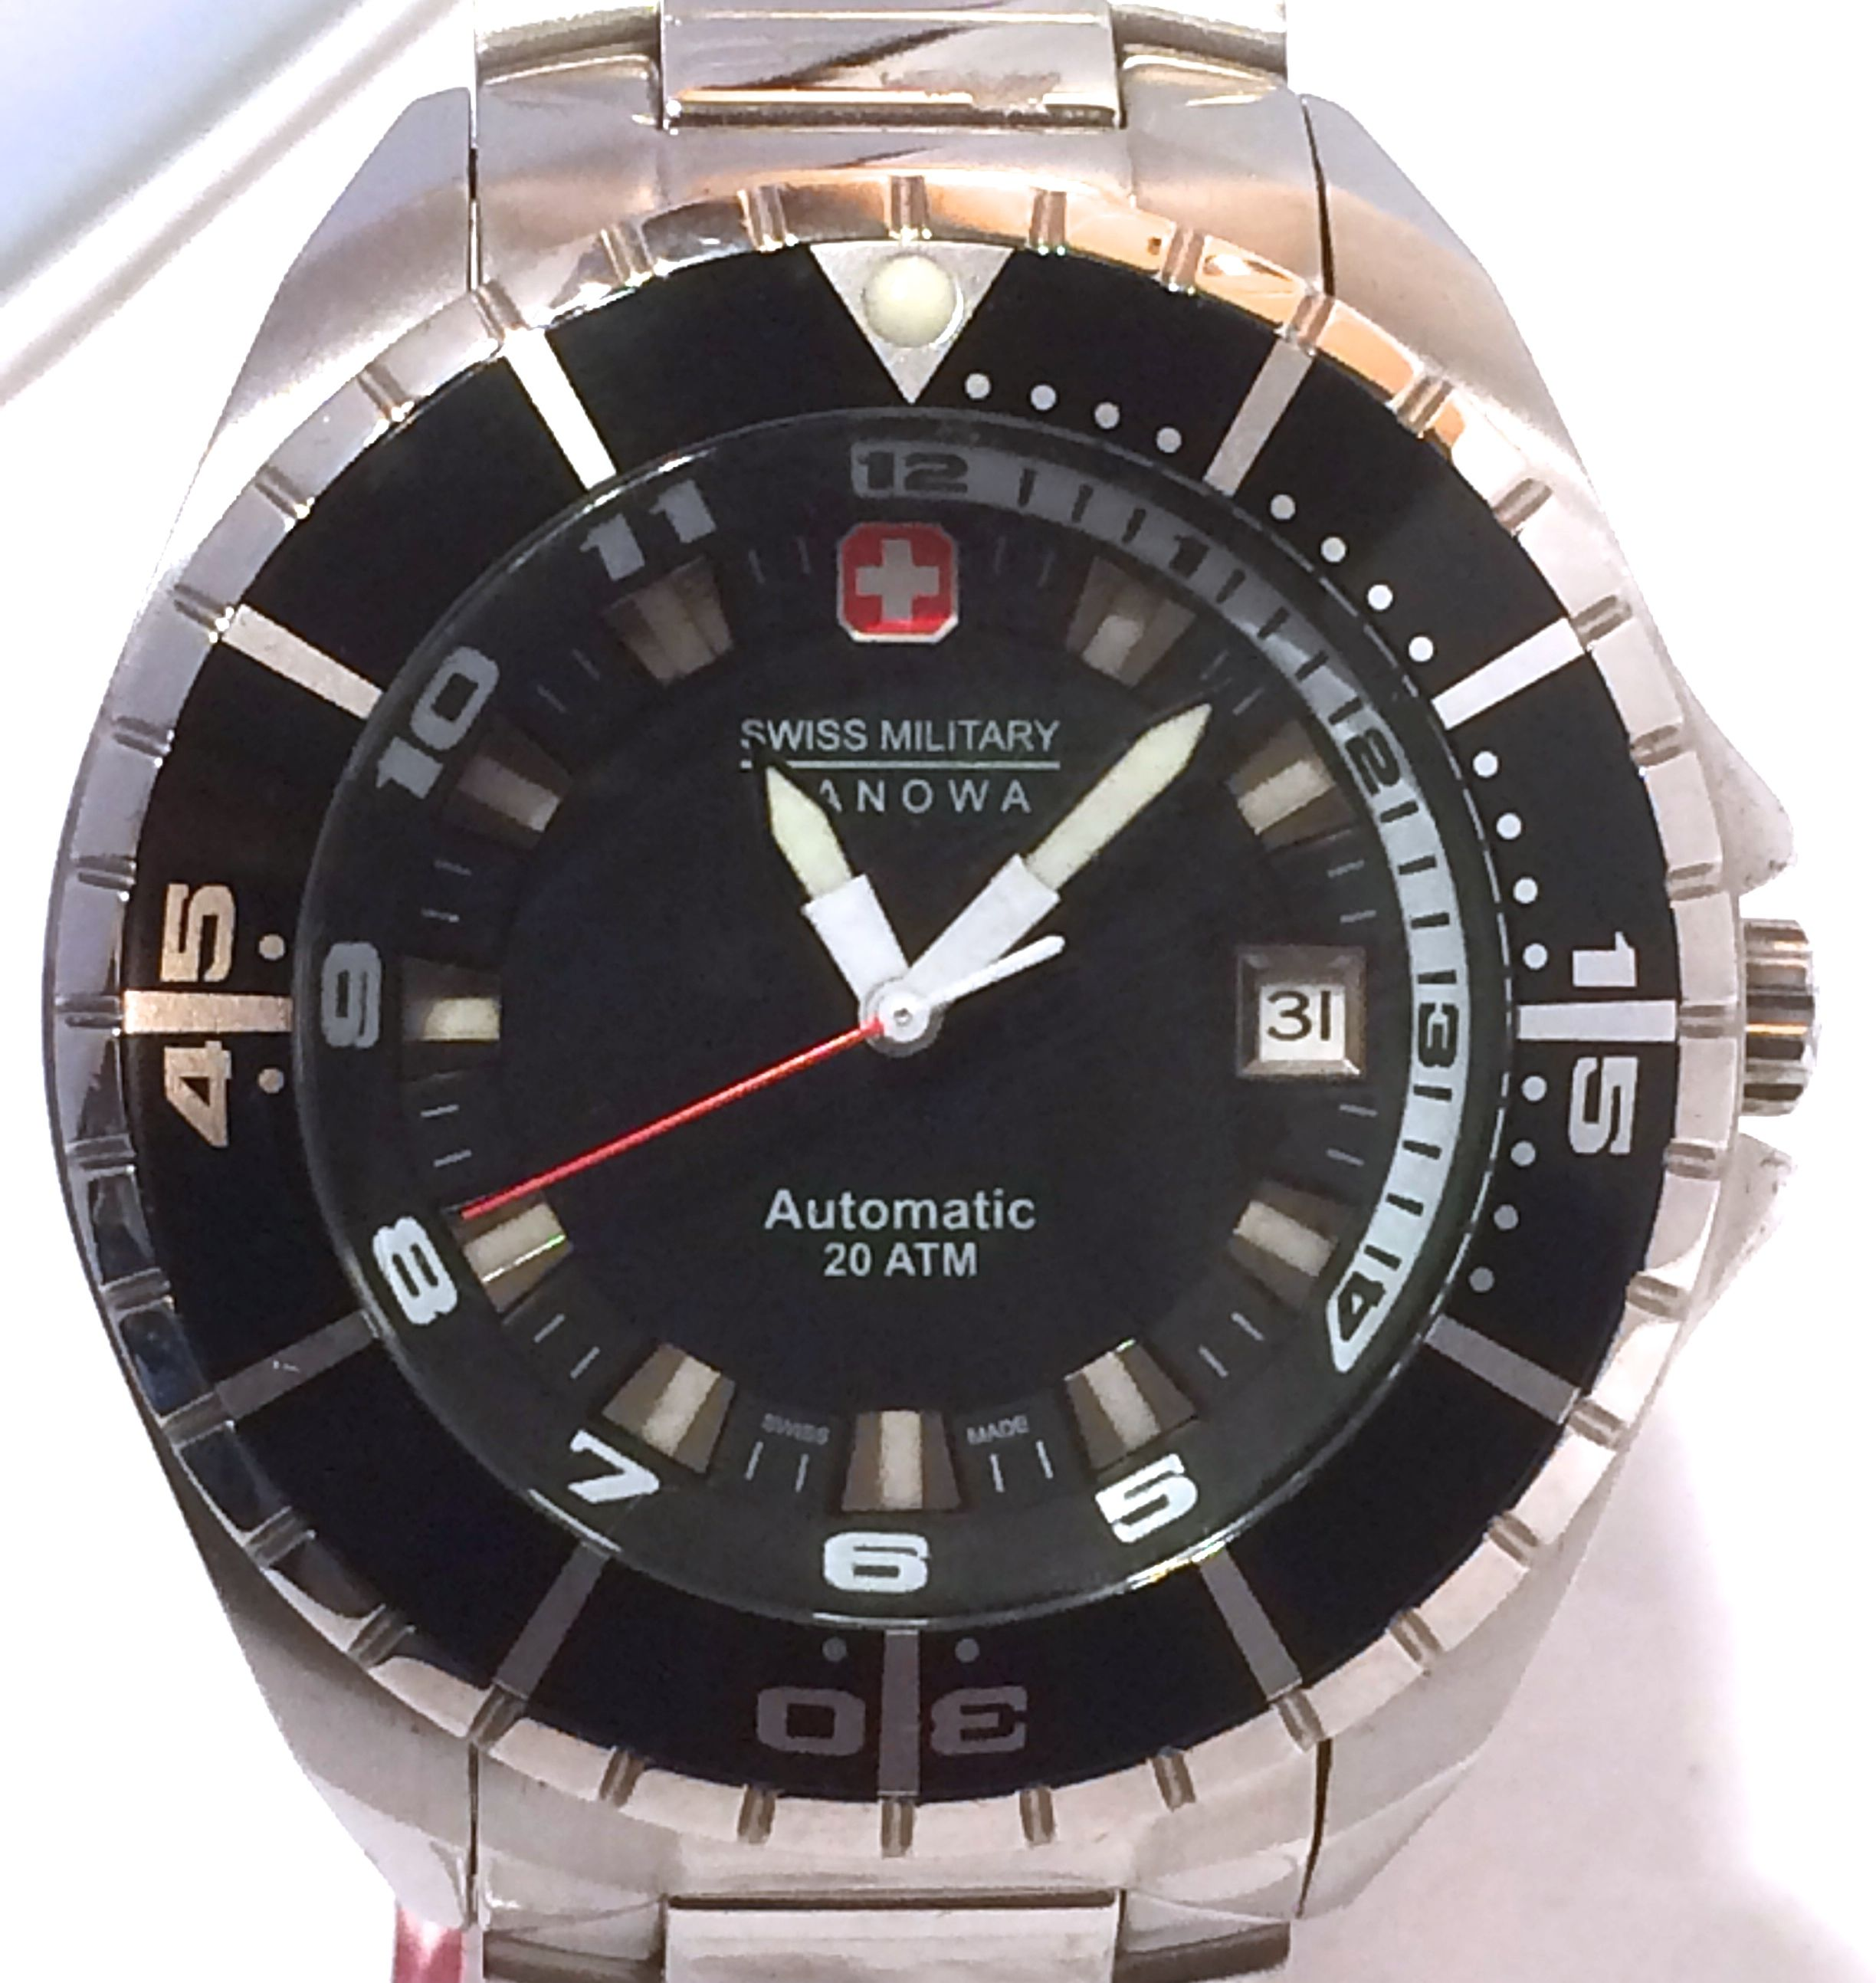 Swiss Military Hanowa Sealander Automatic Diver Watch